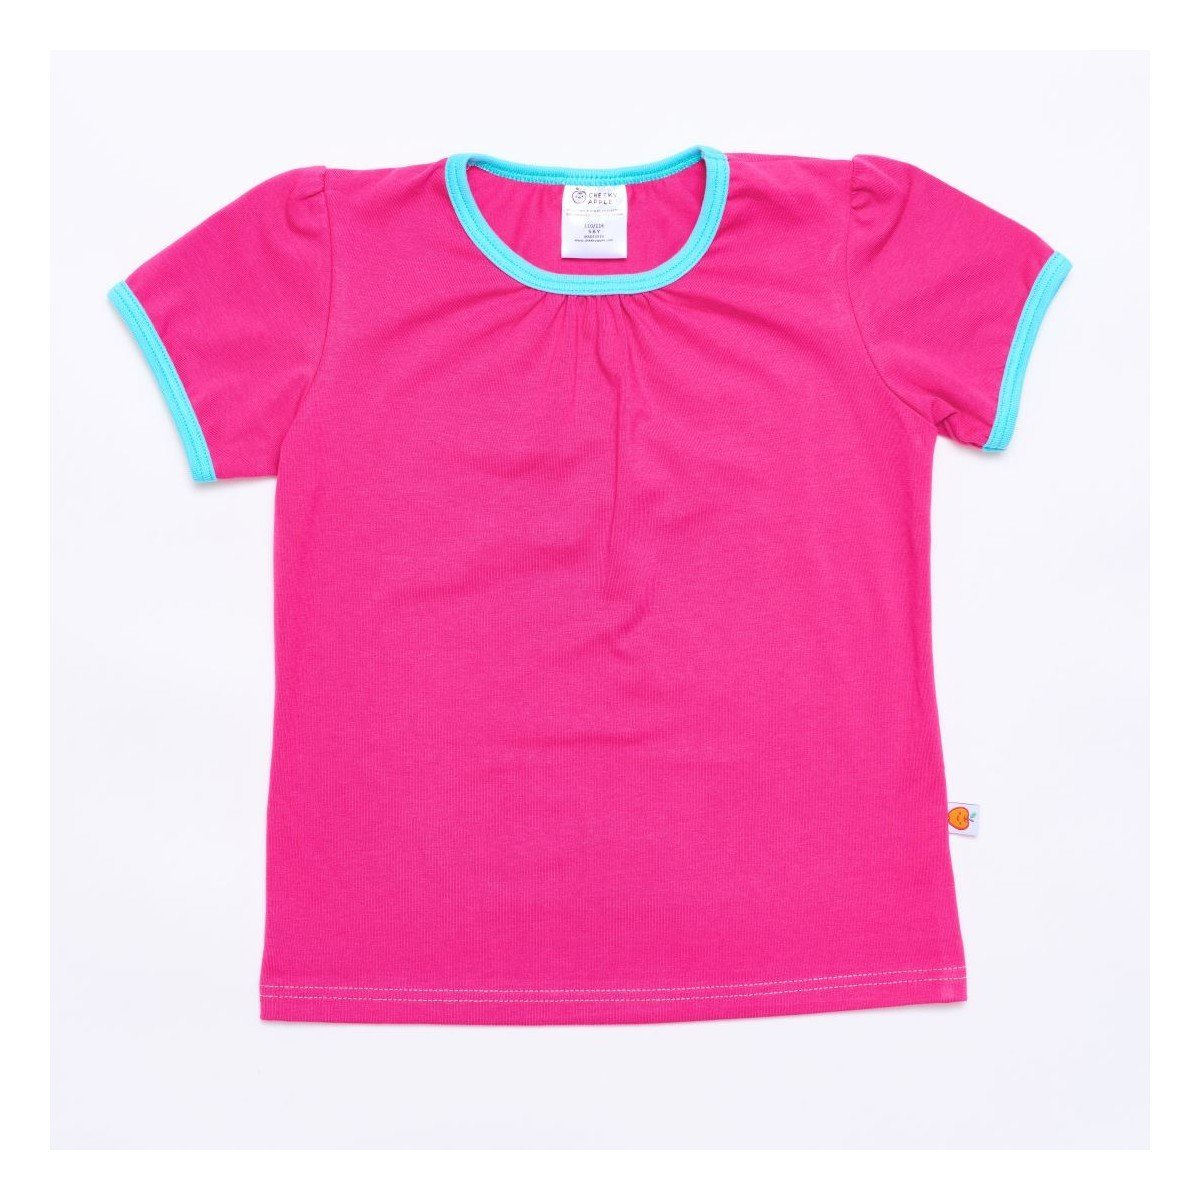 Shirt Cheeky Apple - Shirt Fuchsia/Mint - bio und fair